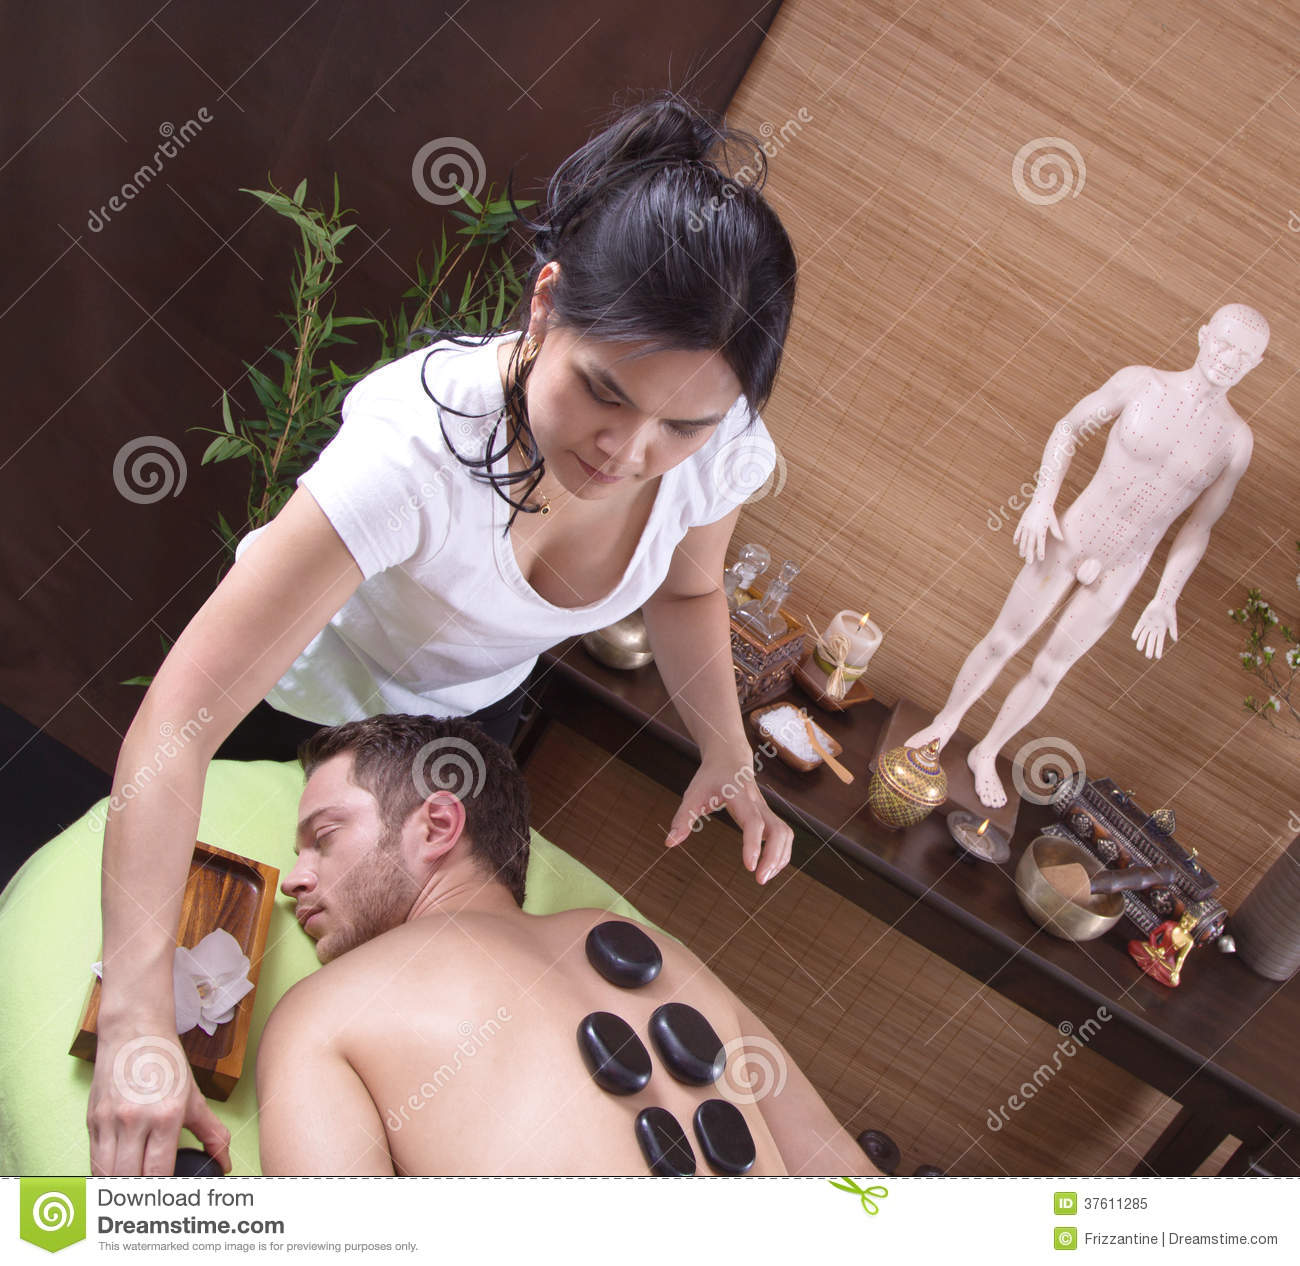 dejta gratis thai massage men